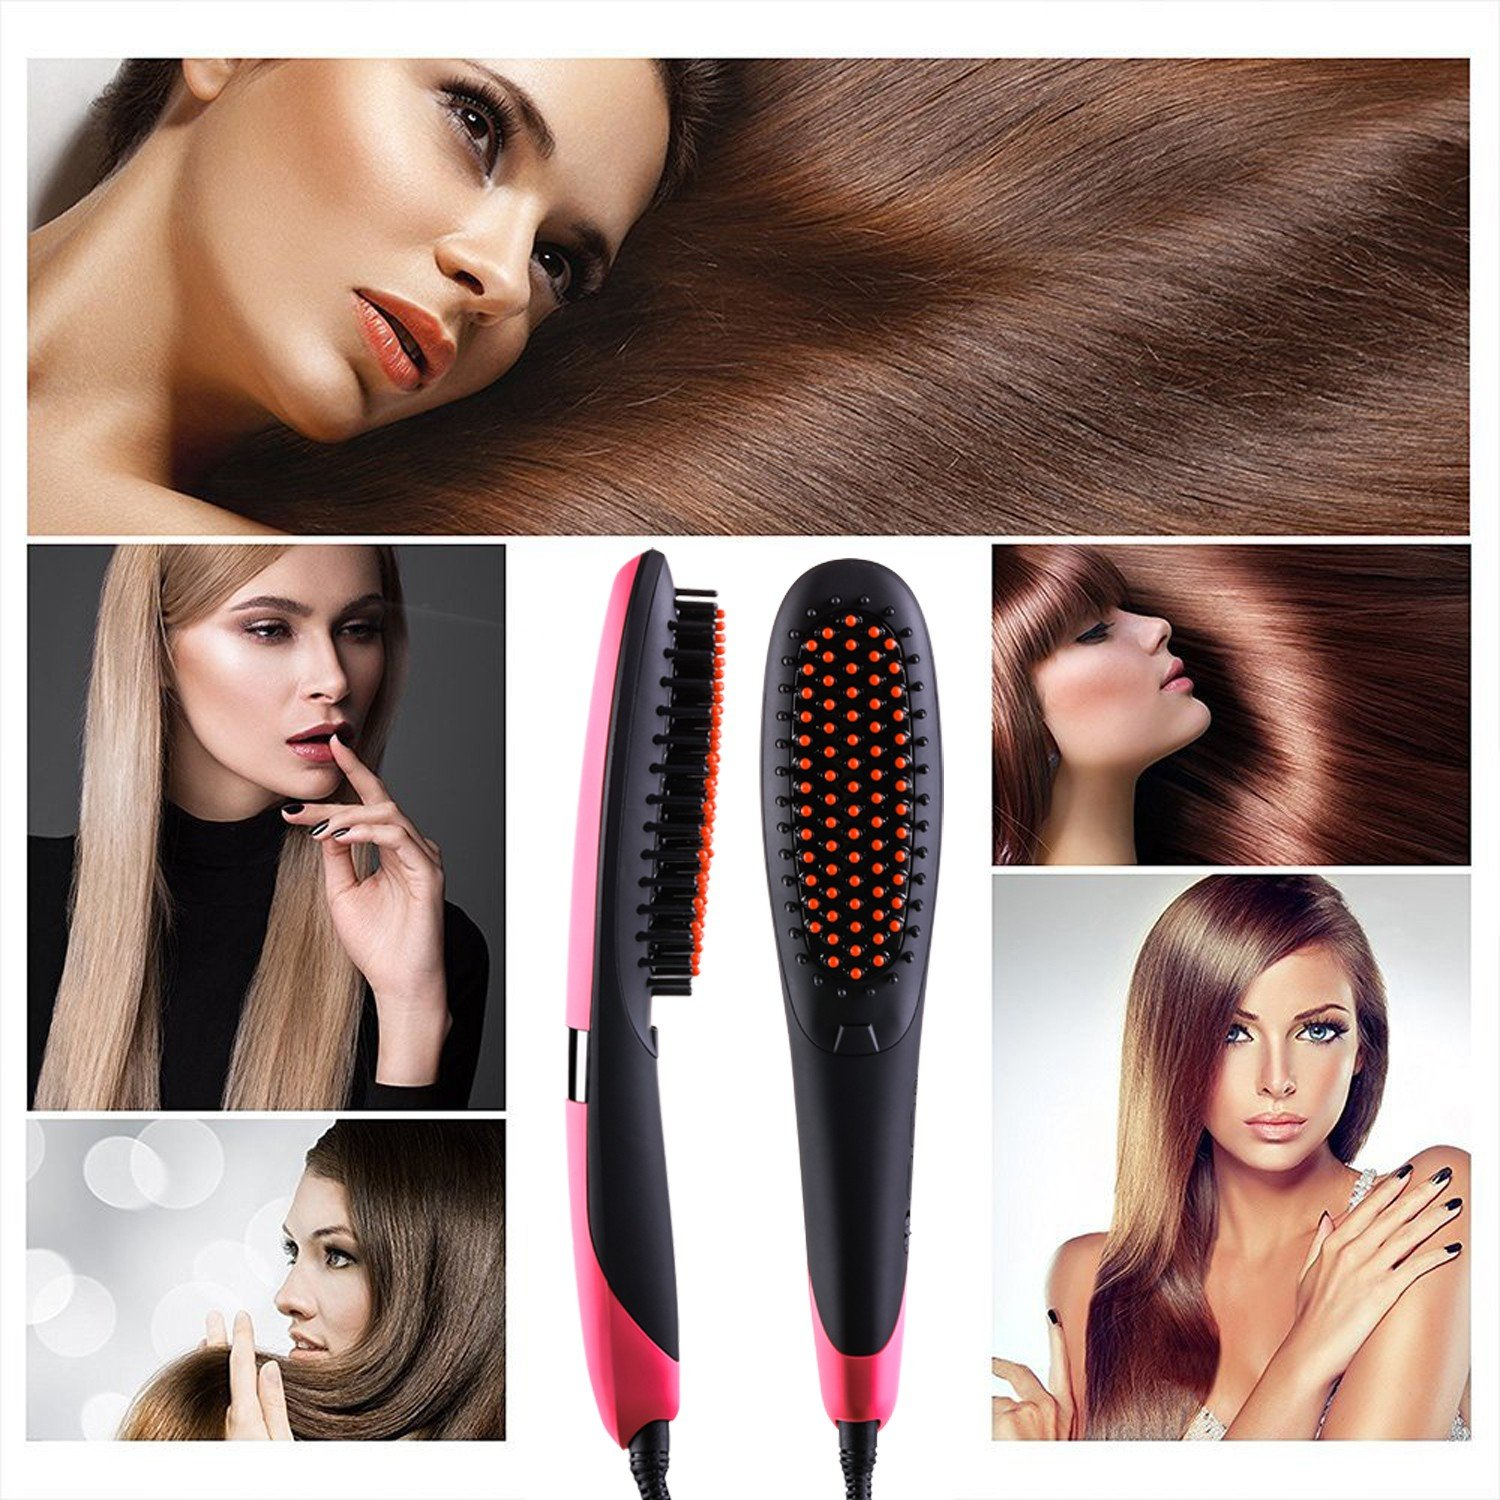 Hair Straightener Brush, INMISS Electric Ionic Ceramic Hair Straightening Brush with Auto Shut Off Temperature Lock Function - Pink